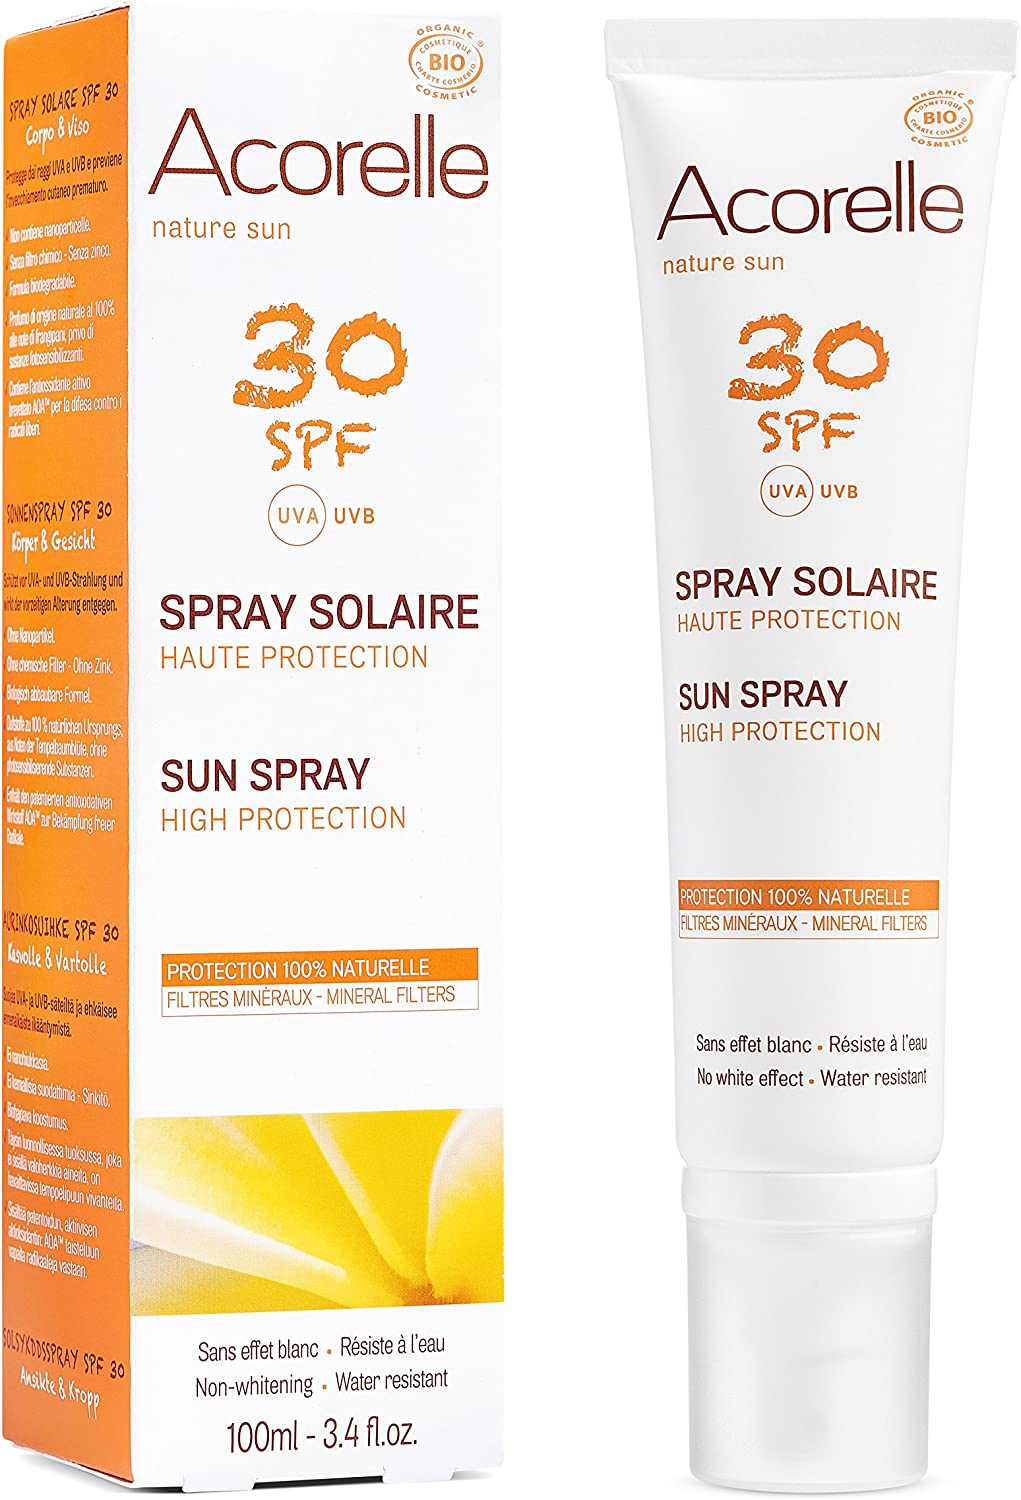 Acorelle Spray Solar Spf 30 100Ml Acorelle 500 g: Amazon.es: Belleza